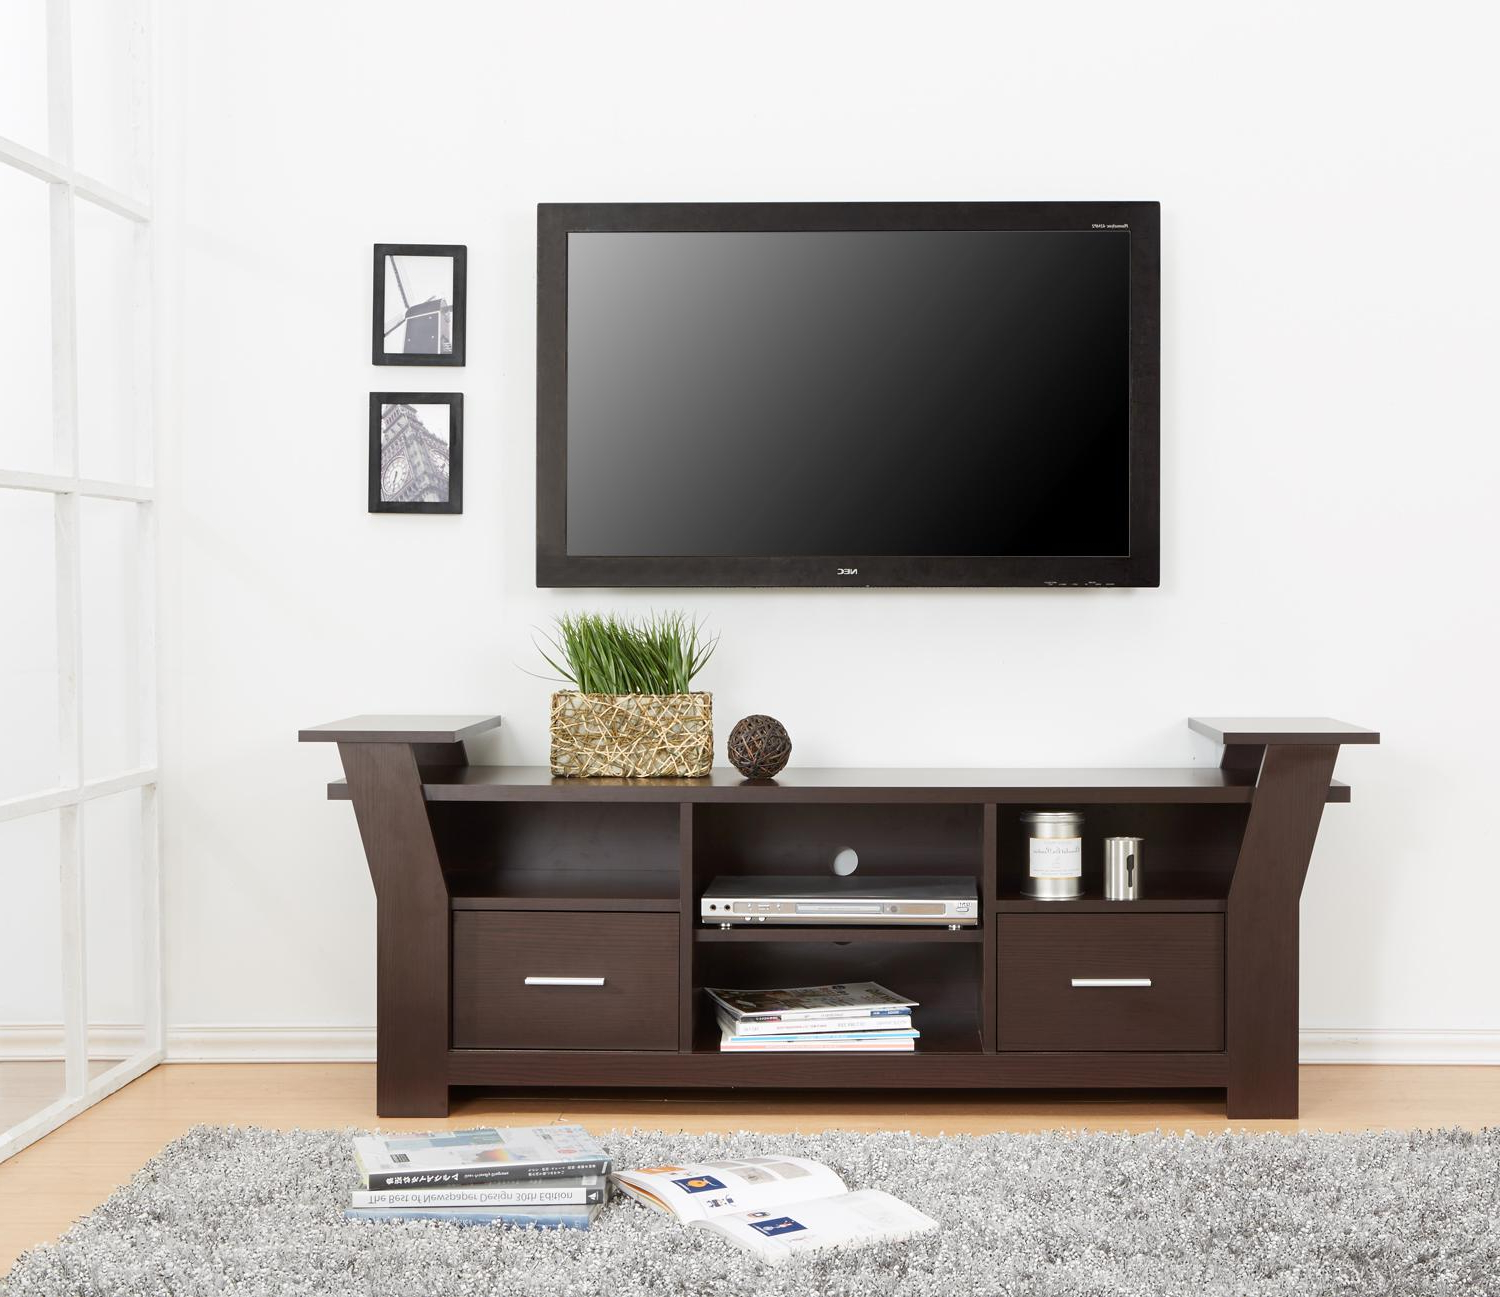 Modern Wooden Tv Stand With Storage Two Drawers And Four Shelves In For Latest Tv Stands With Drawers And Shelves (View 4 of 20)